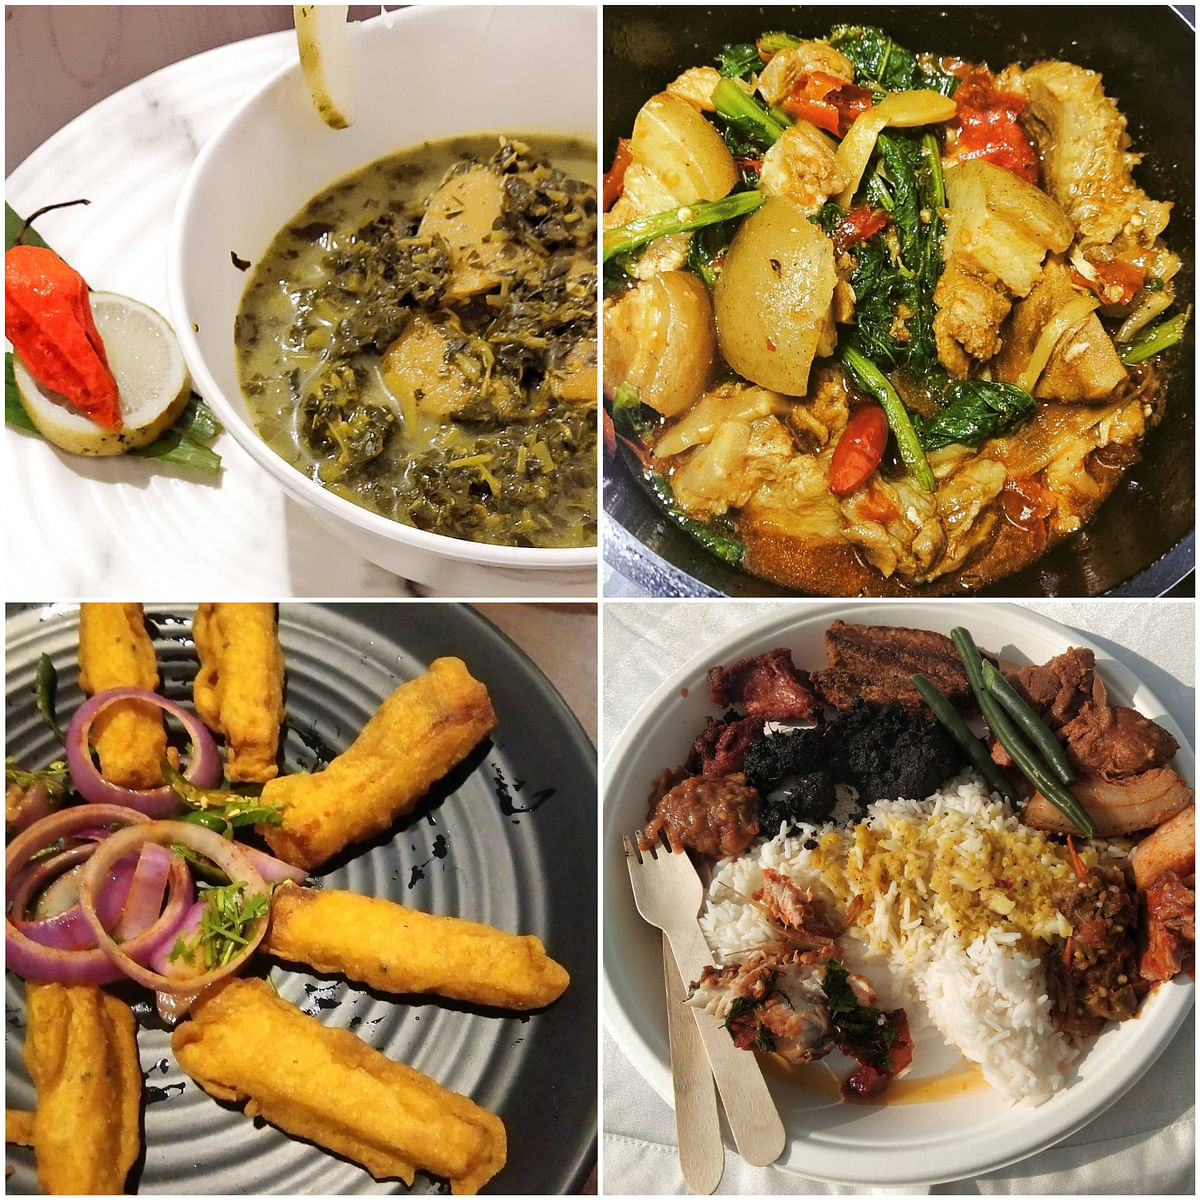 Few dishes from the kitchen of Michinga